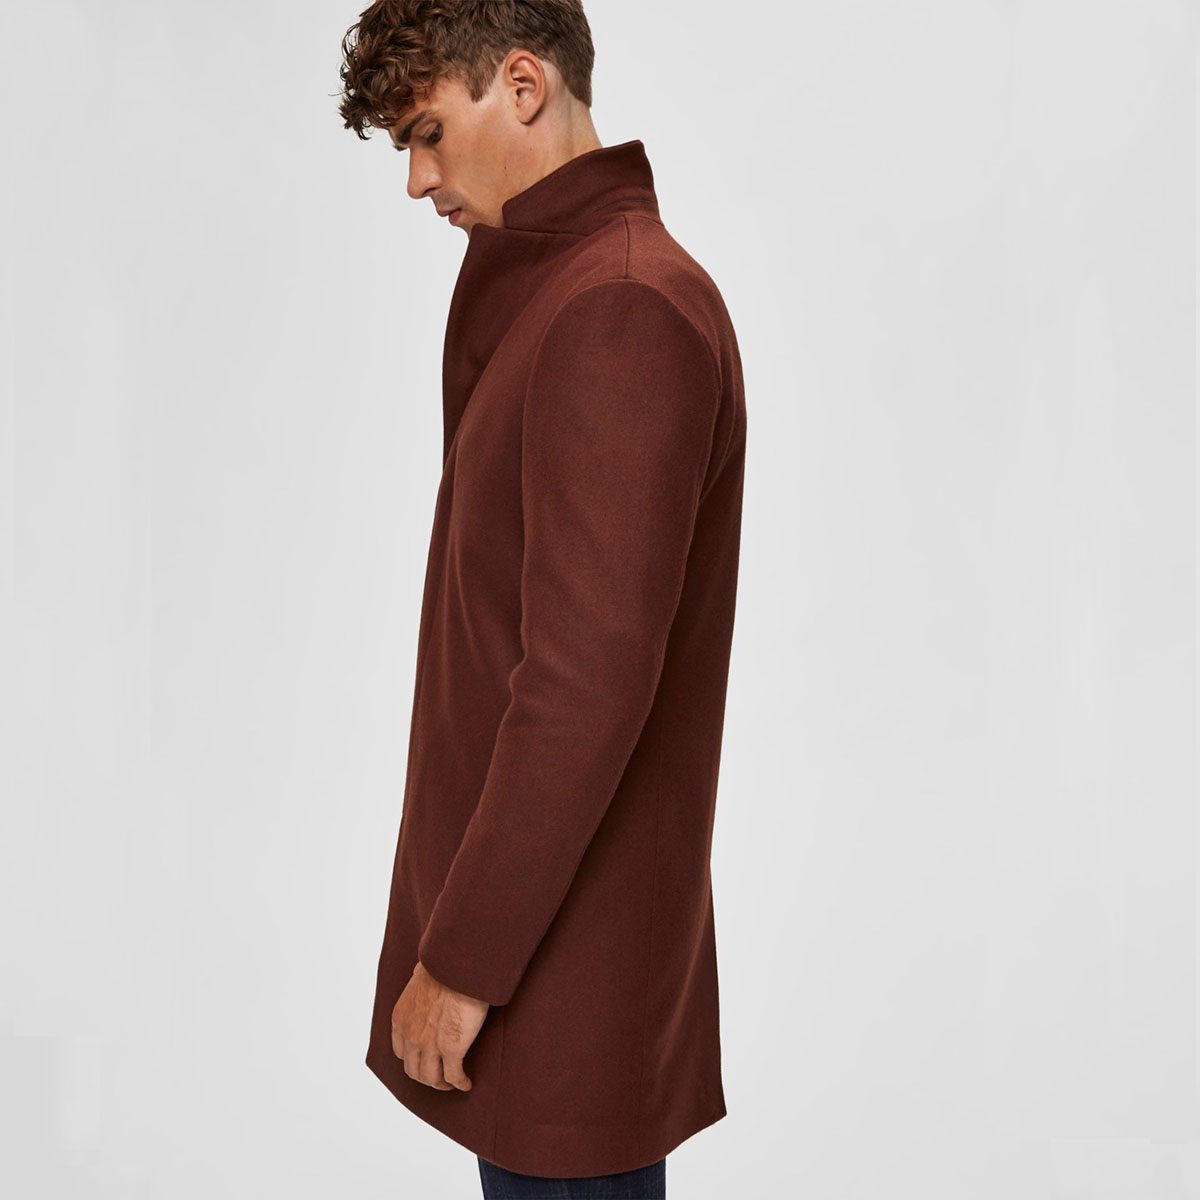 SELECTED HOMME Vlněný kabát Slhbrove Wool Coat B – M